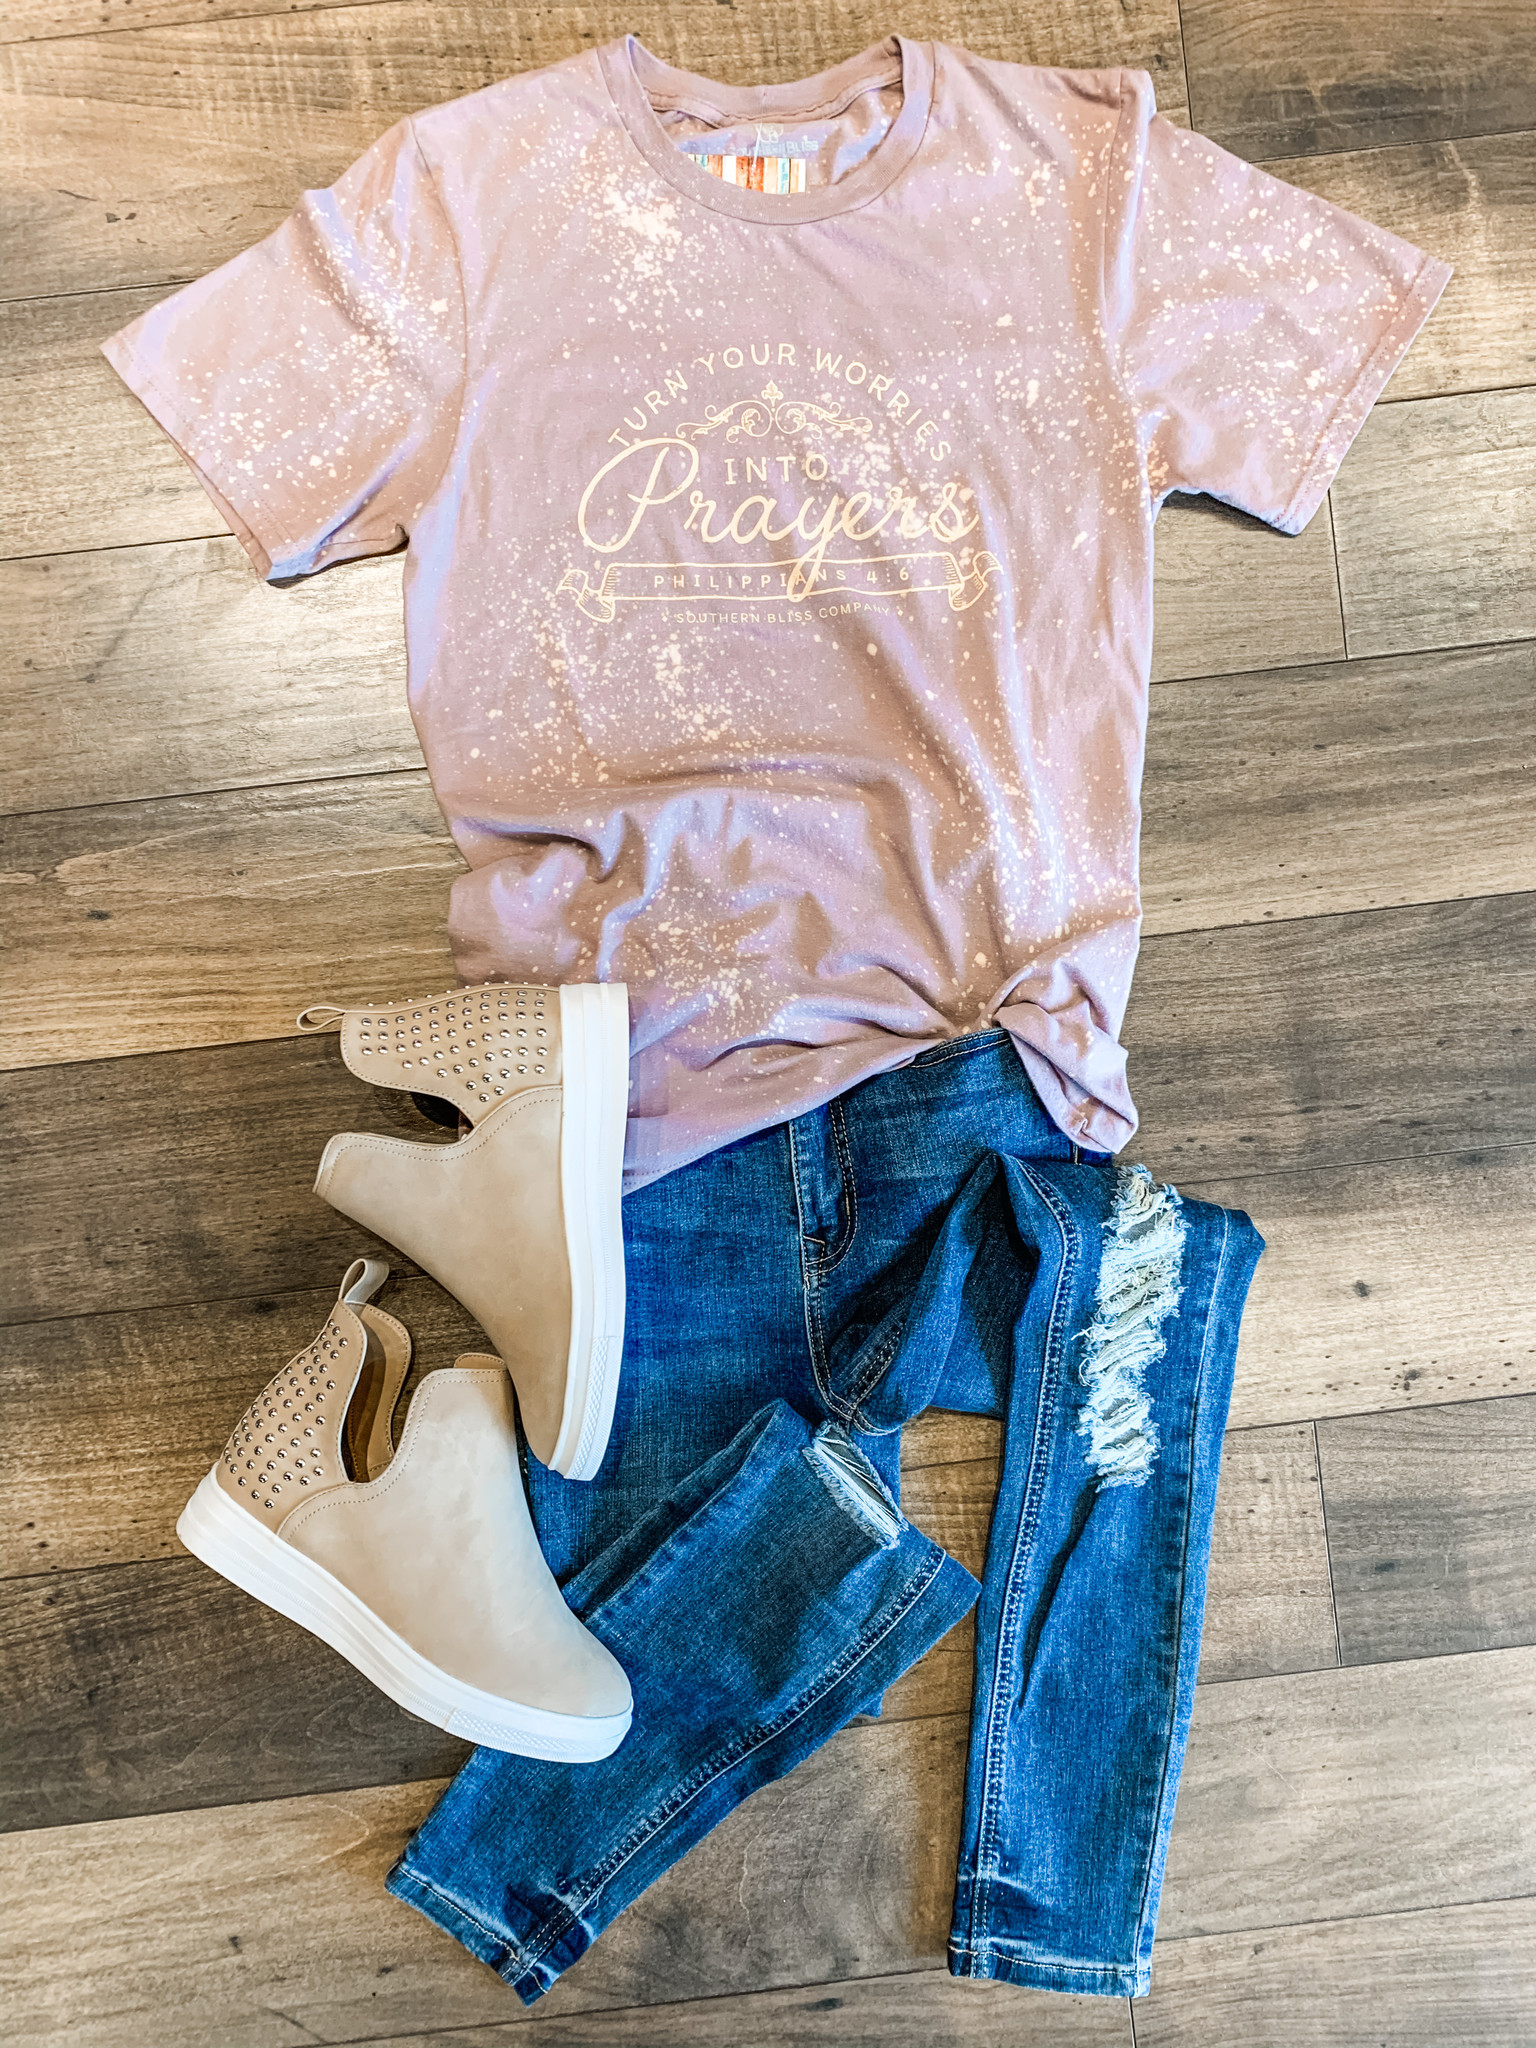 Southern Bliss Turn Your Prayers Tee